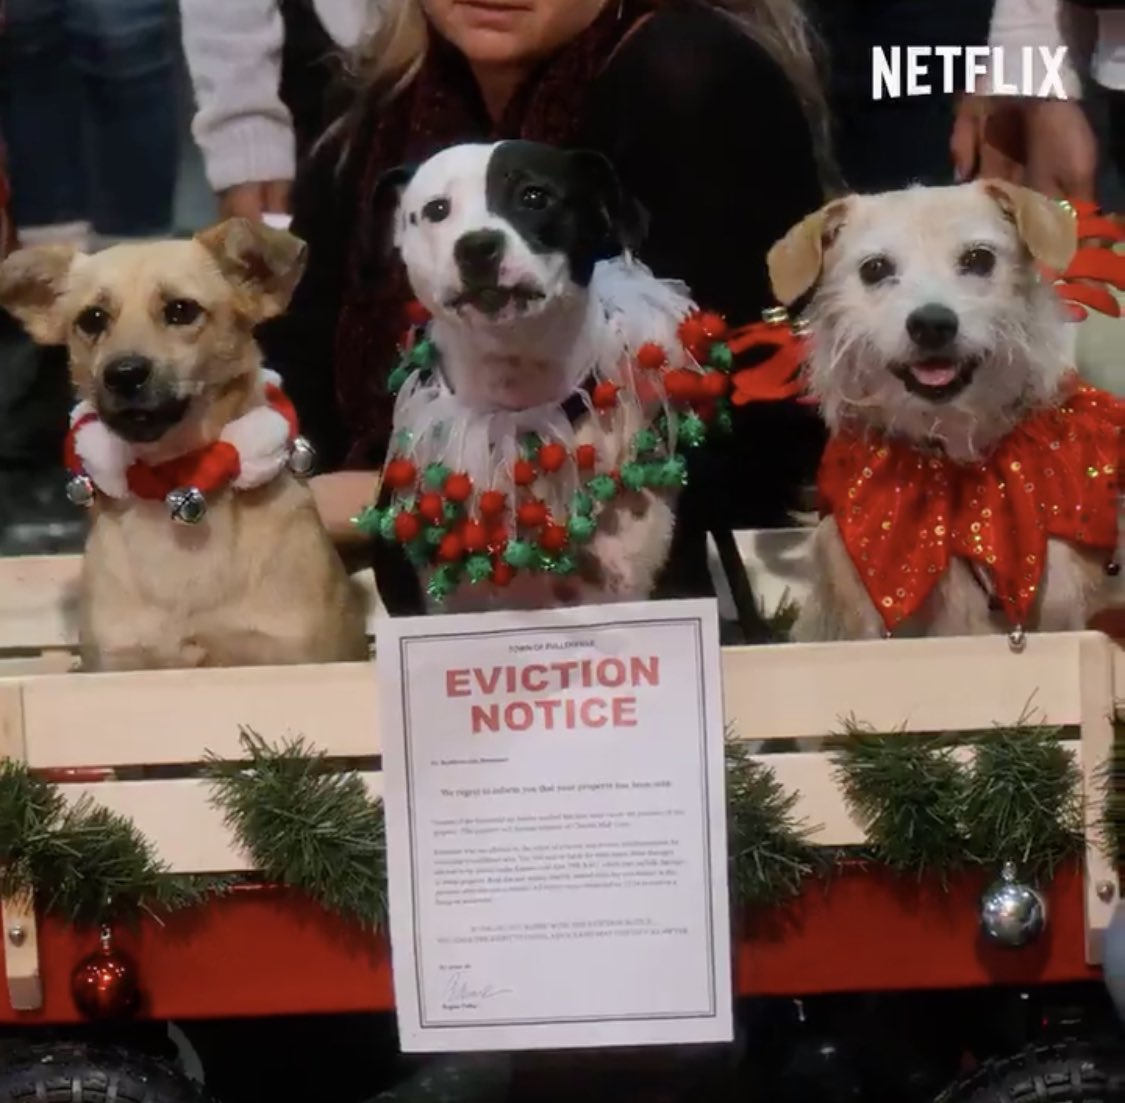 I love that in DOLLY PARTON'S CHRISTMAS ON THE SQUARE Christine Baranski is serving everyone in town eviction notices INCLUDING THE DOGS